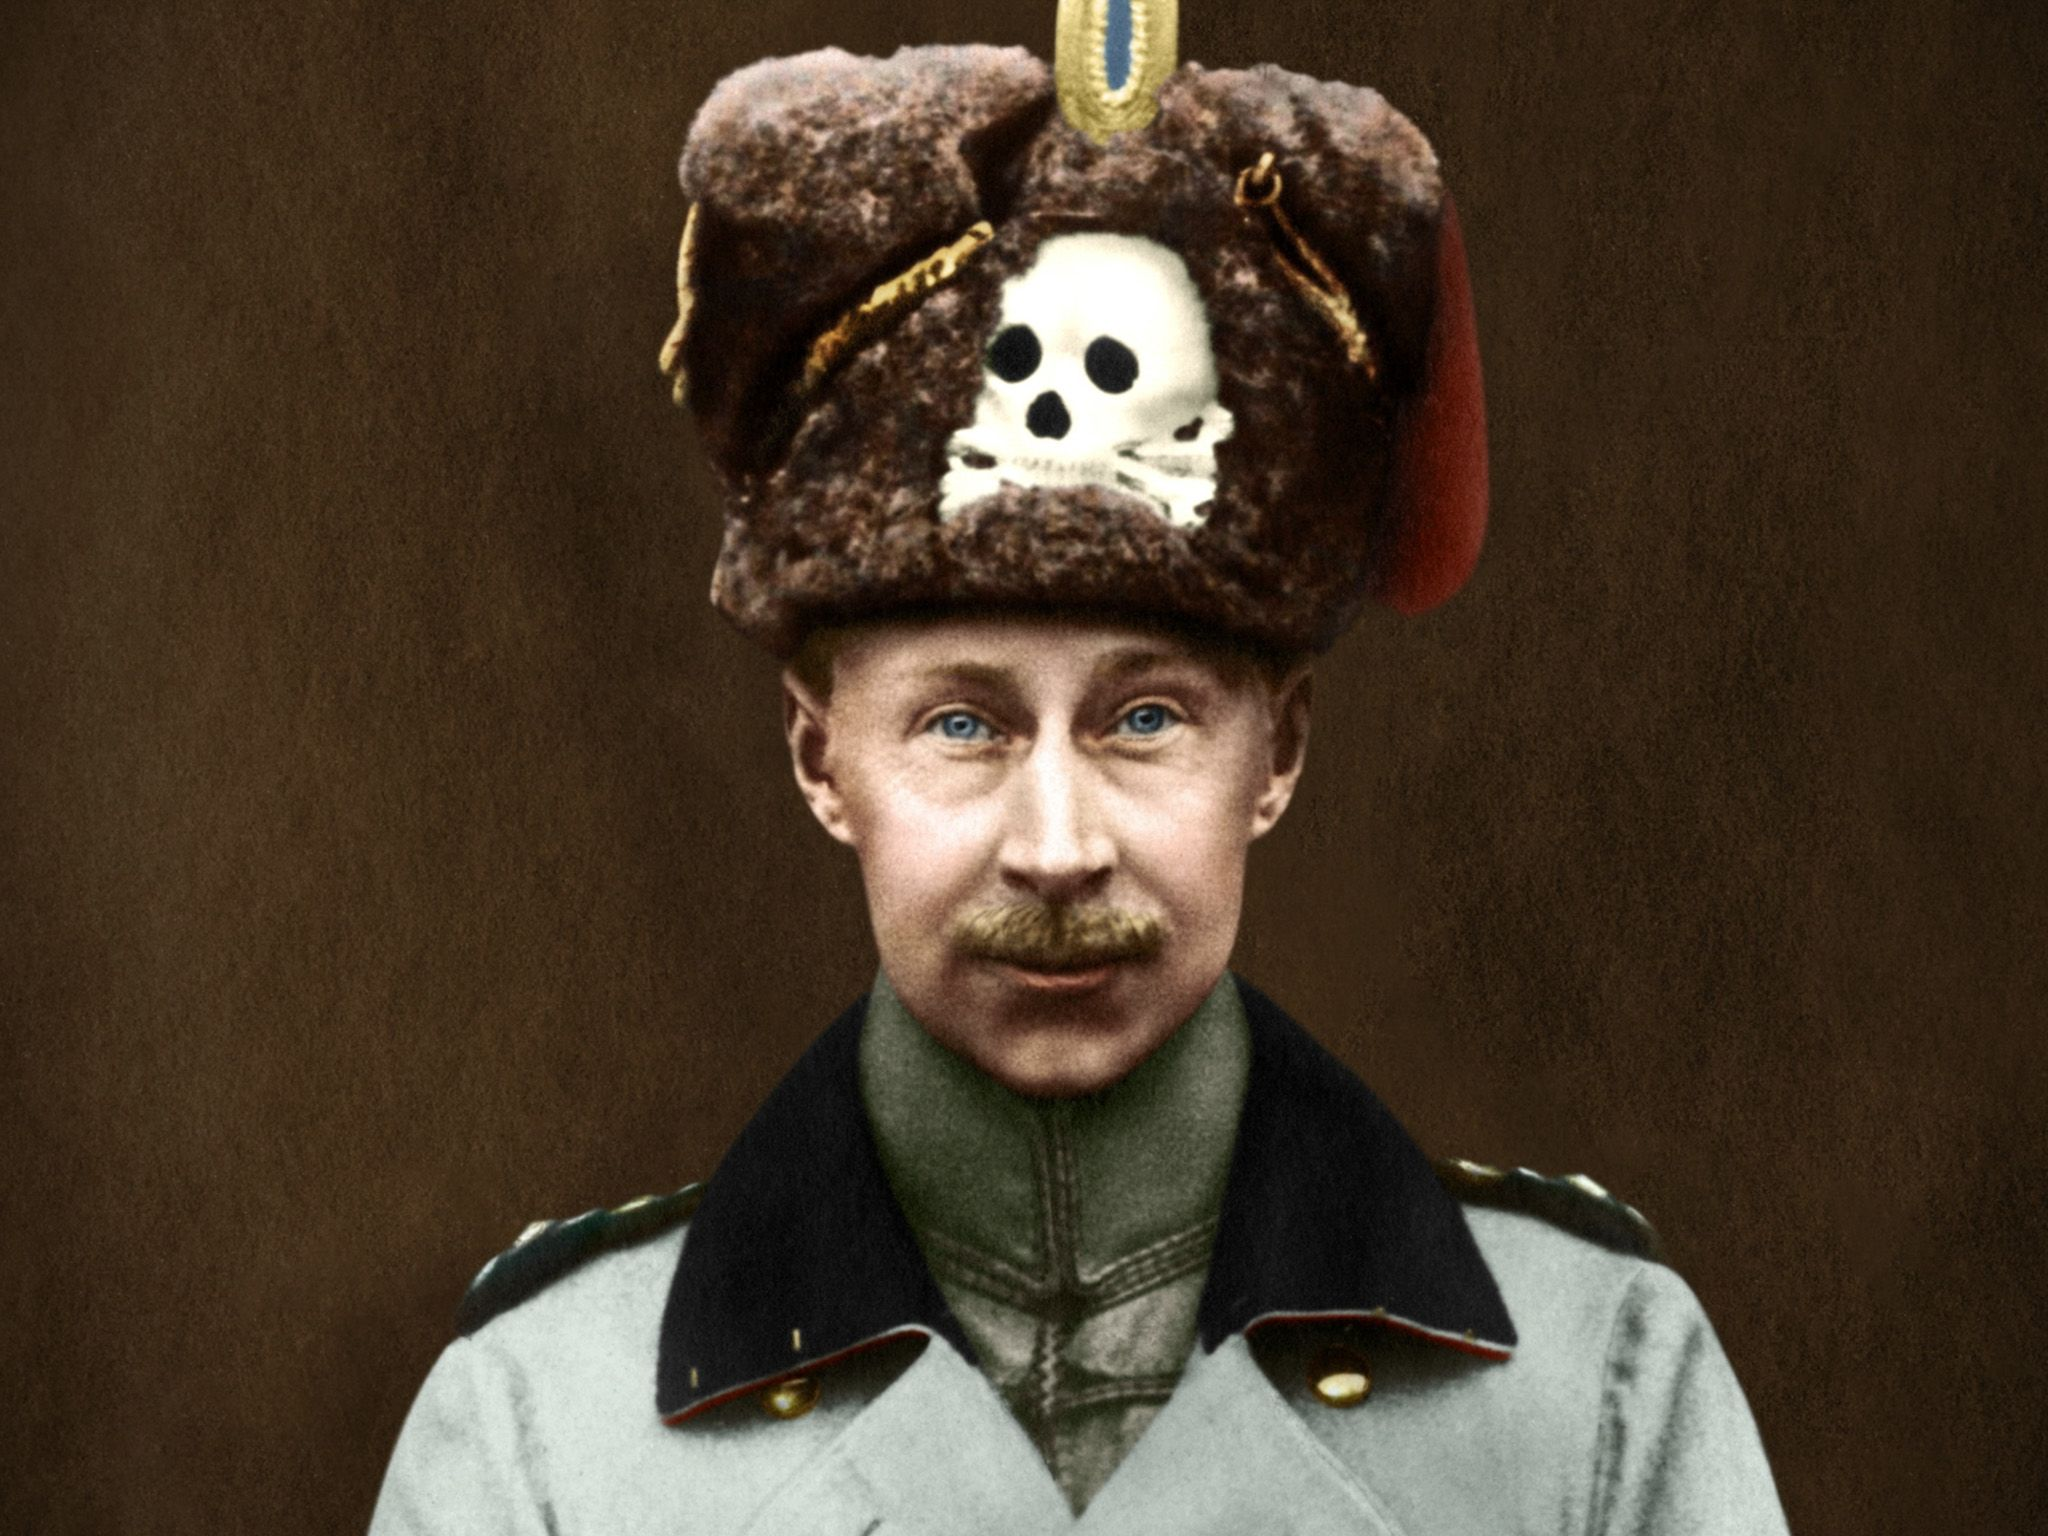 The Kronprinz (crown prince) Wilhelm of Prussia, with the skull and crossbones, the emblem of... [Photo of the day - December 2016]